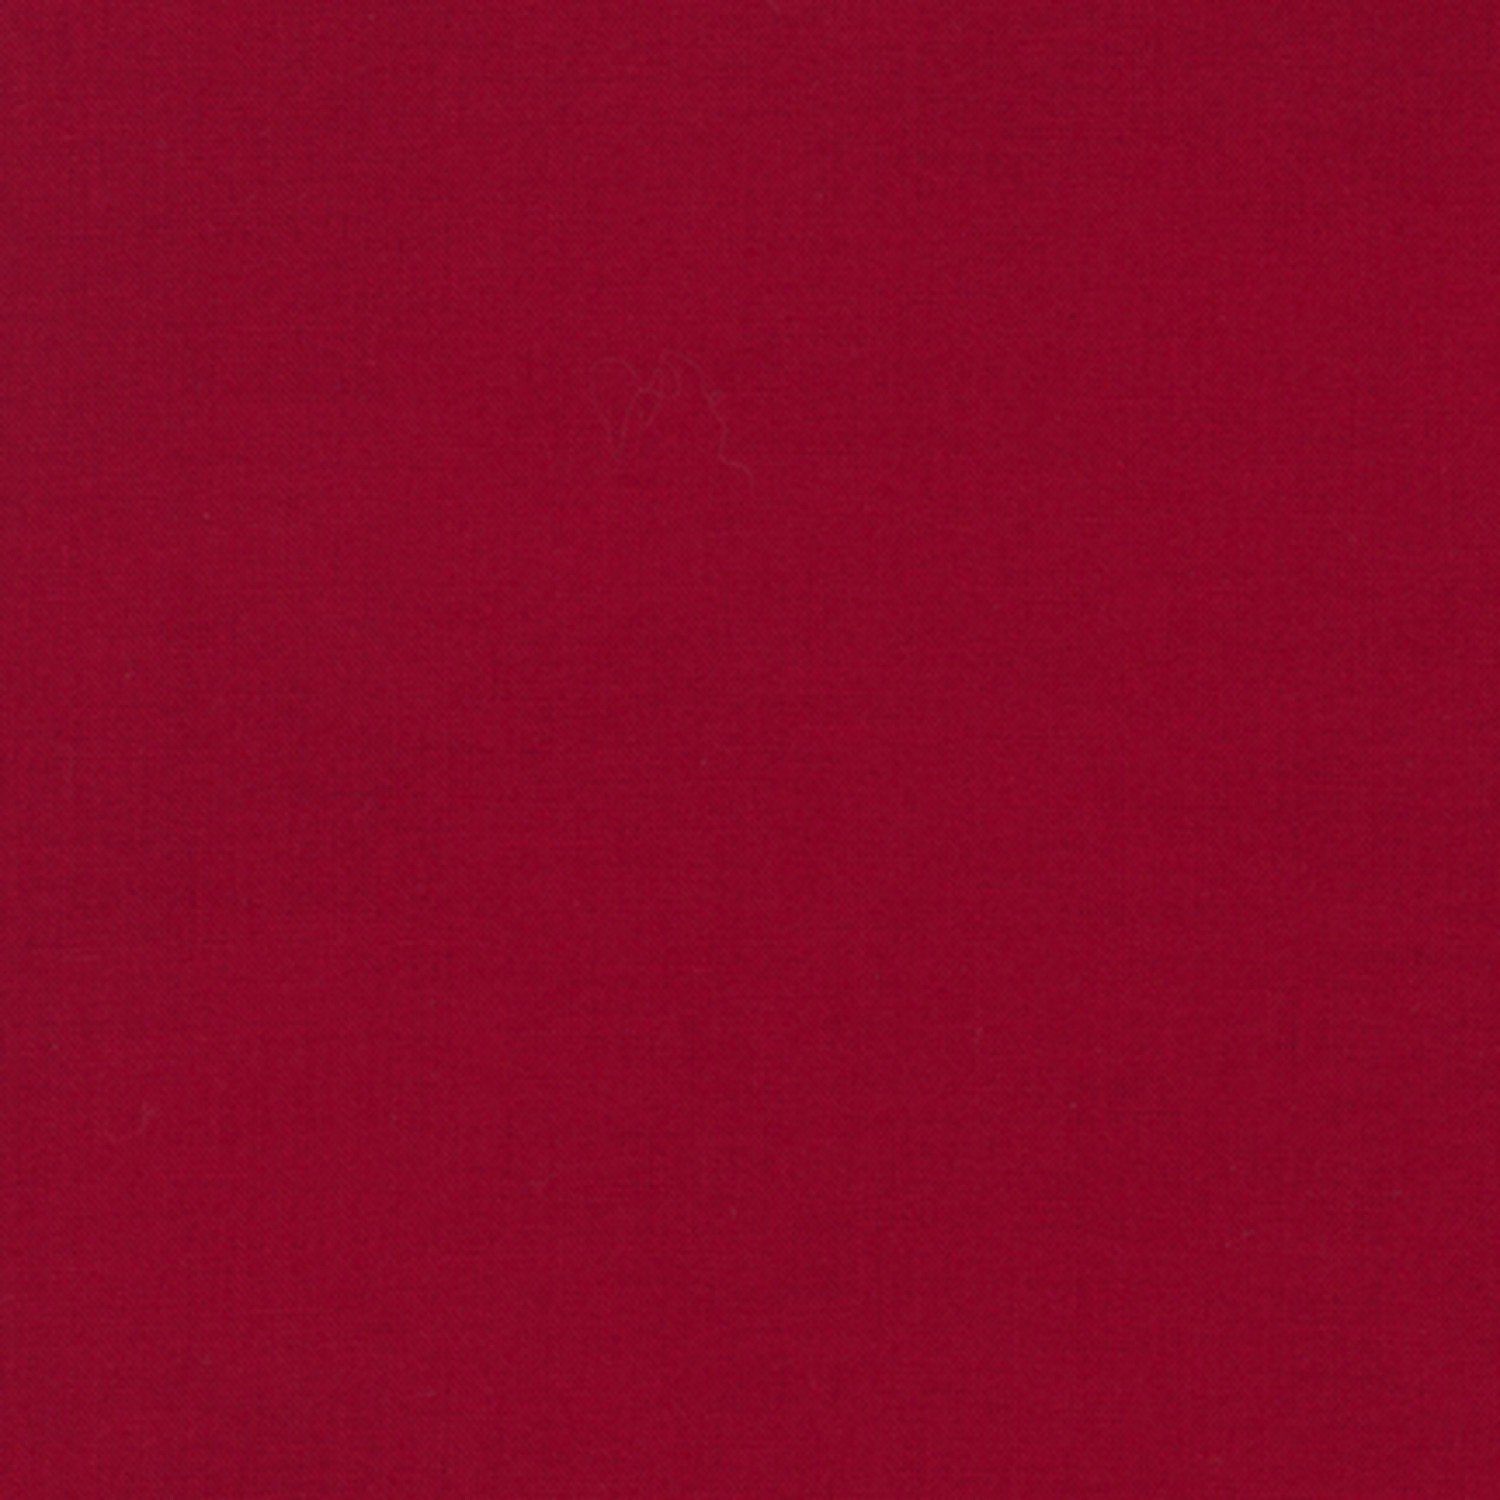 Rich Red Kona Cotton 108in Wide K082-1551